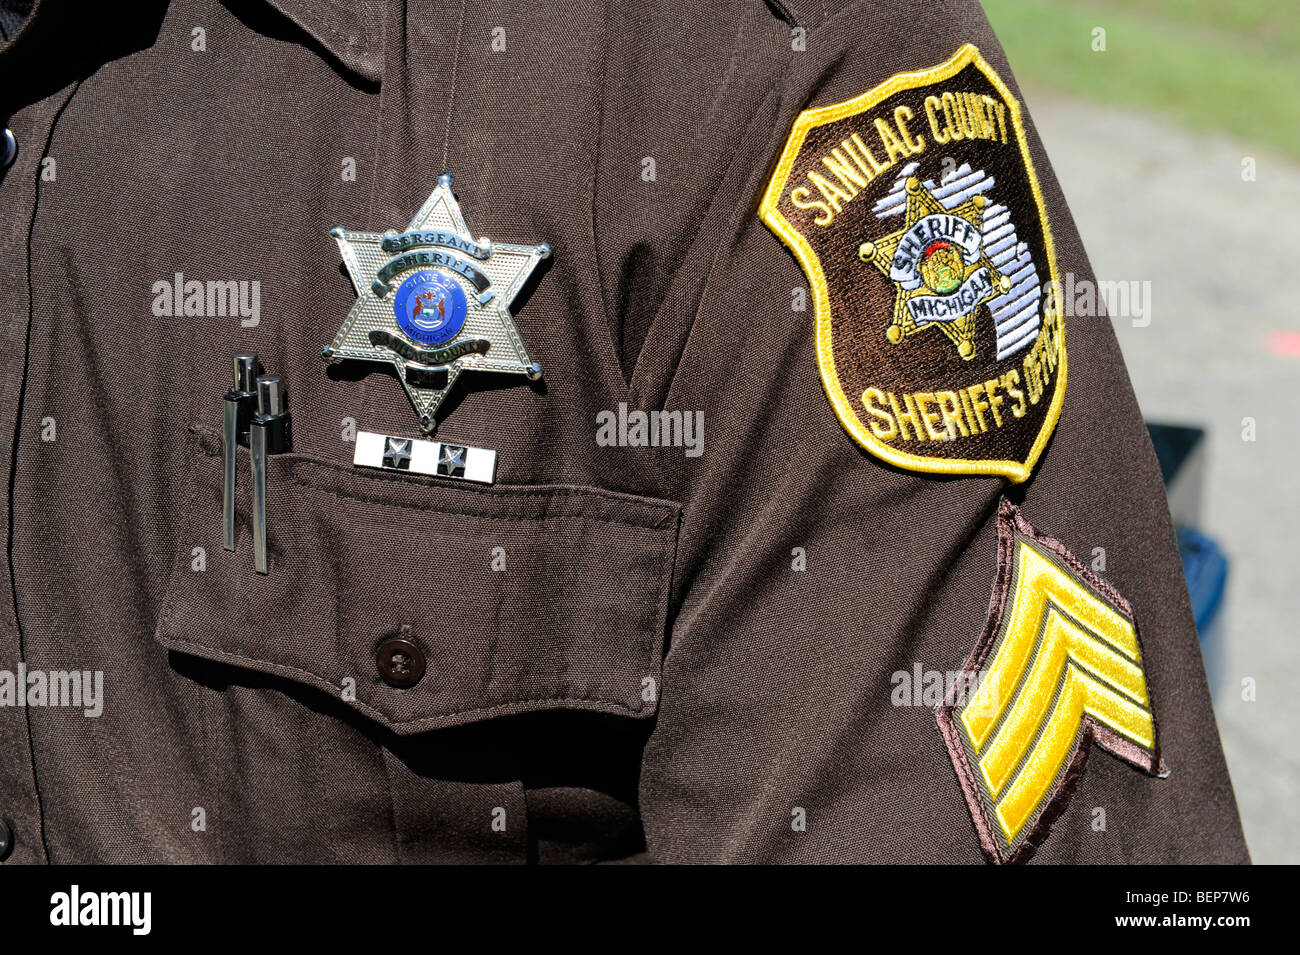 Police Patches Stock Photos & Police Patches Stock Images - Alamy